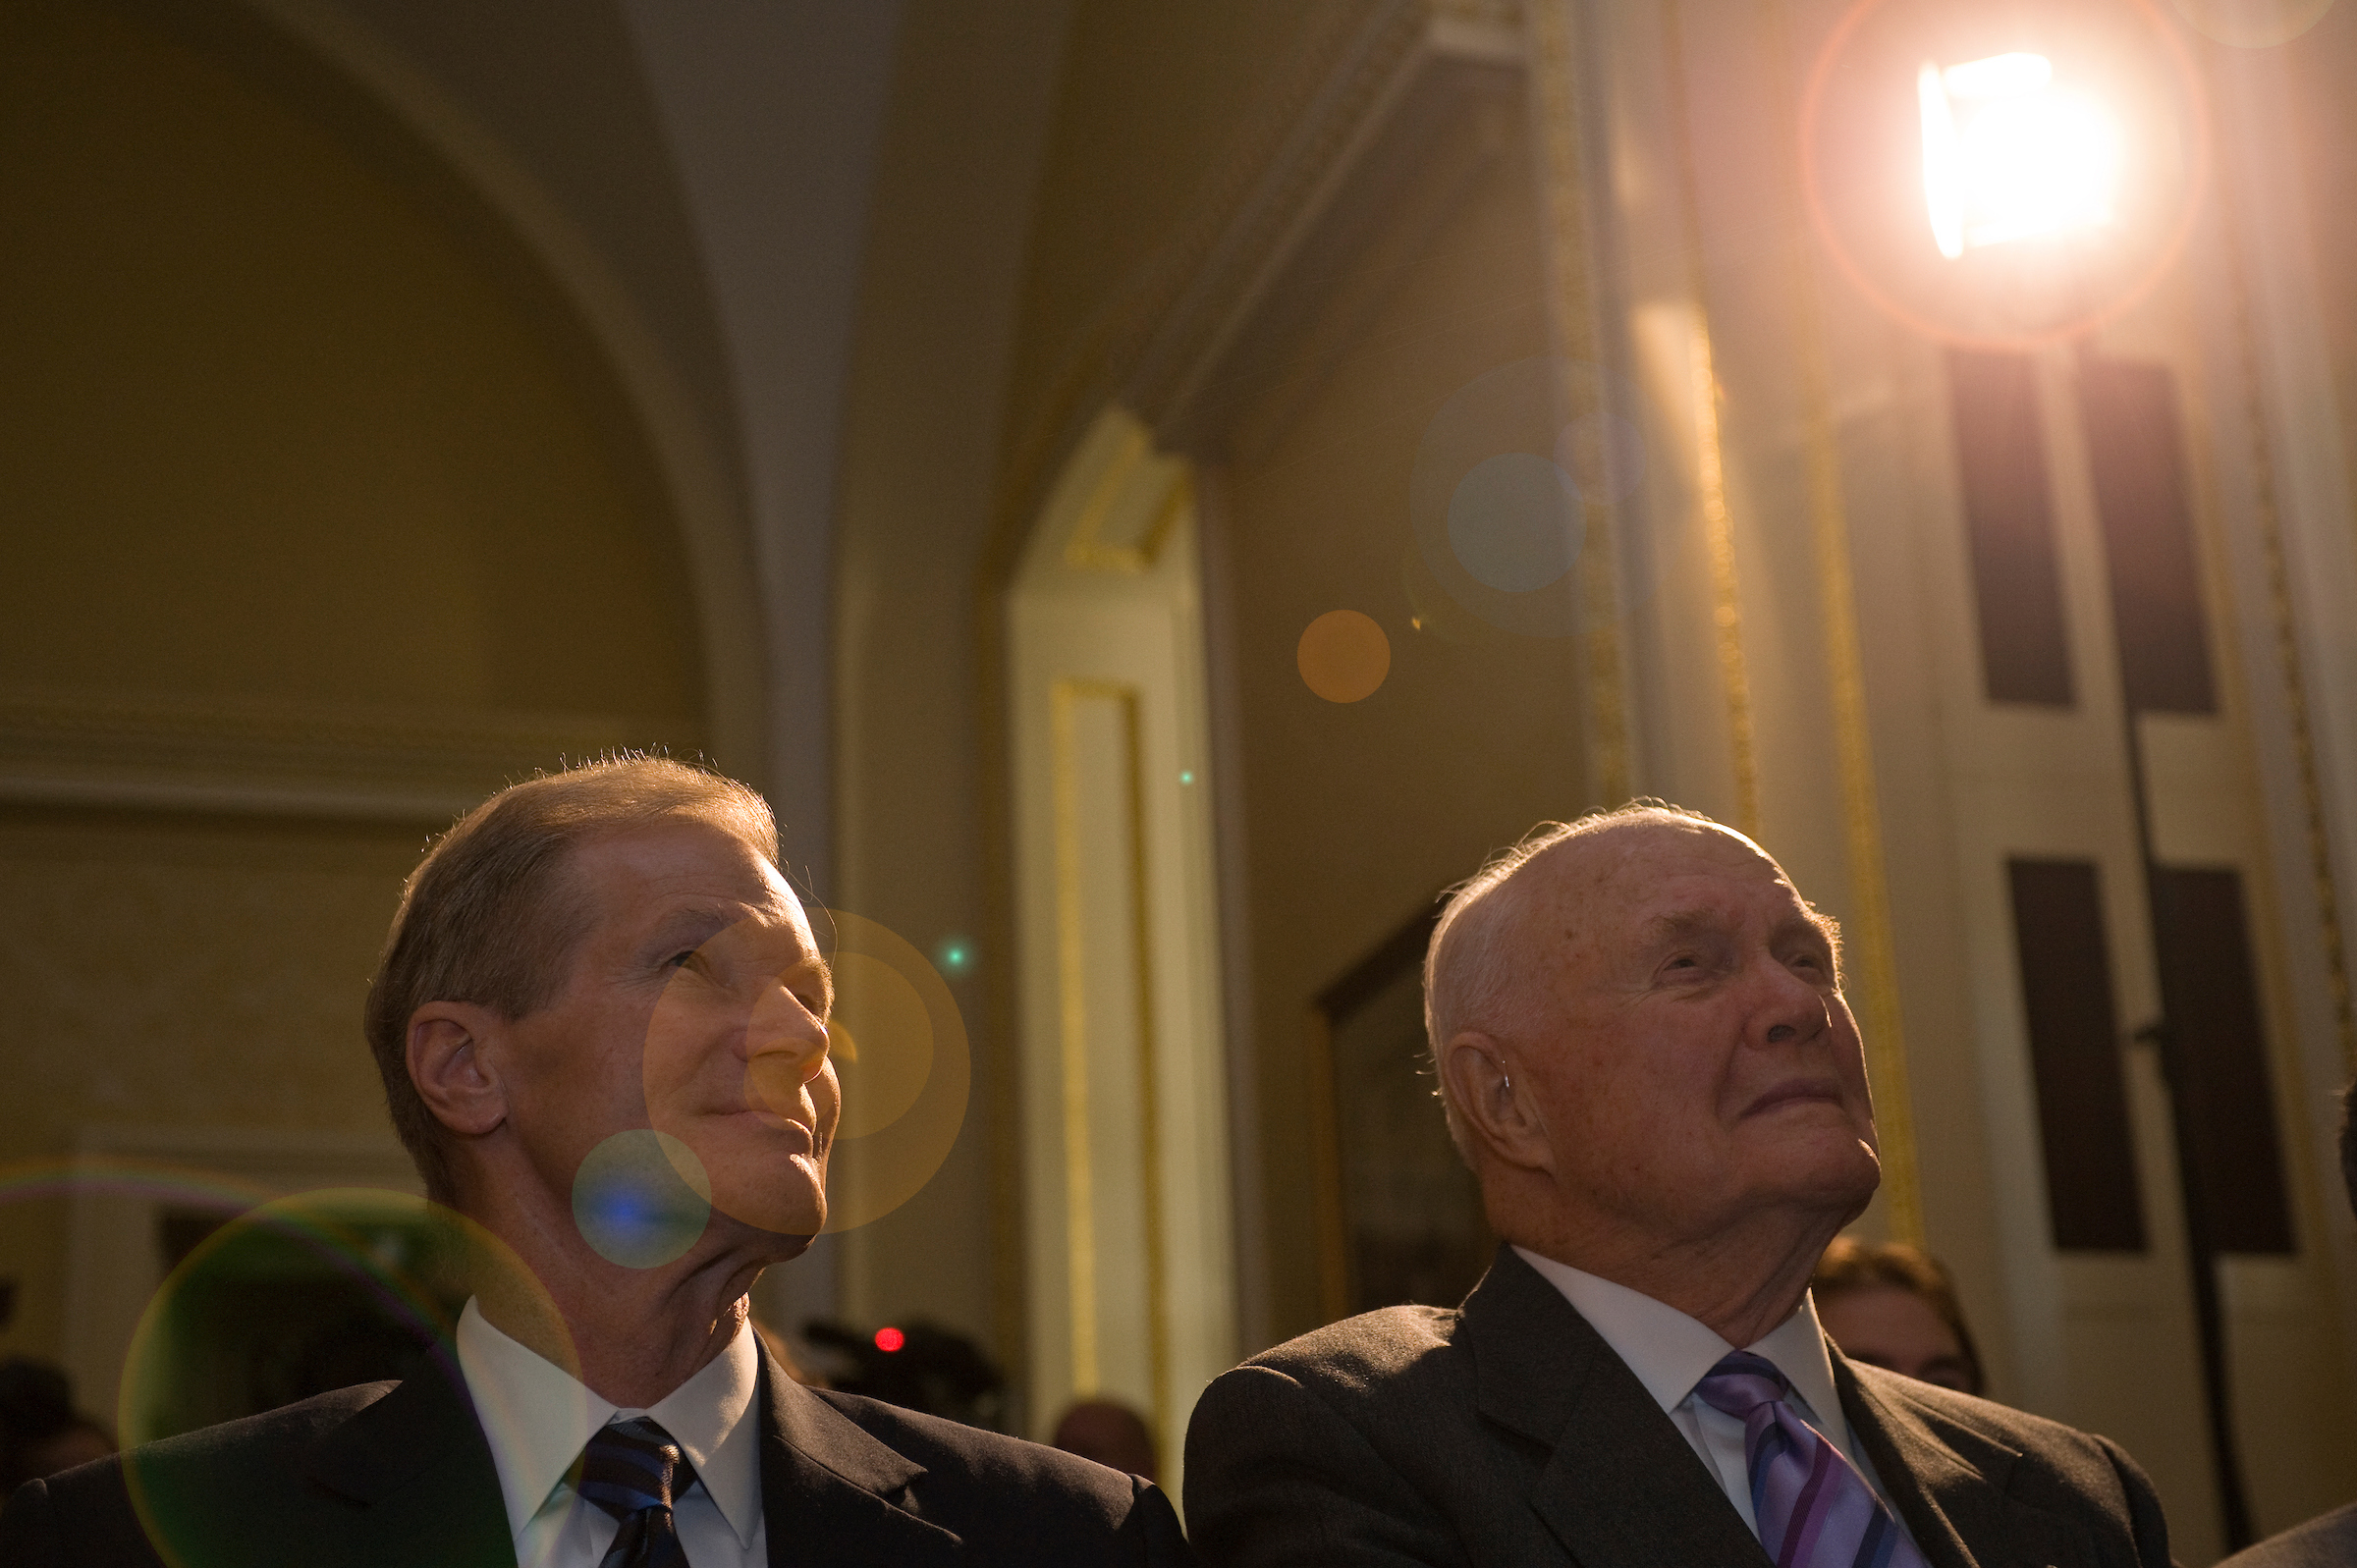 May 6, 2008: Sen. Bill Nelson, D-Fla., and former Sen. John Glenn, D-Ohio, during a press conference with Discovery Communications Founder and Chairman John Hendricks' for the official presentation of over 100 hours of newly HD transferred NASA archives to NASA's Administrator Michael Griffin. (CQ Roll Call File Photo)